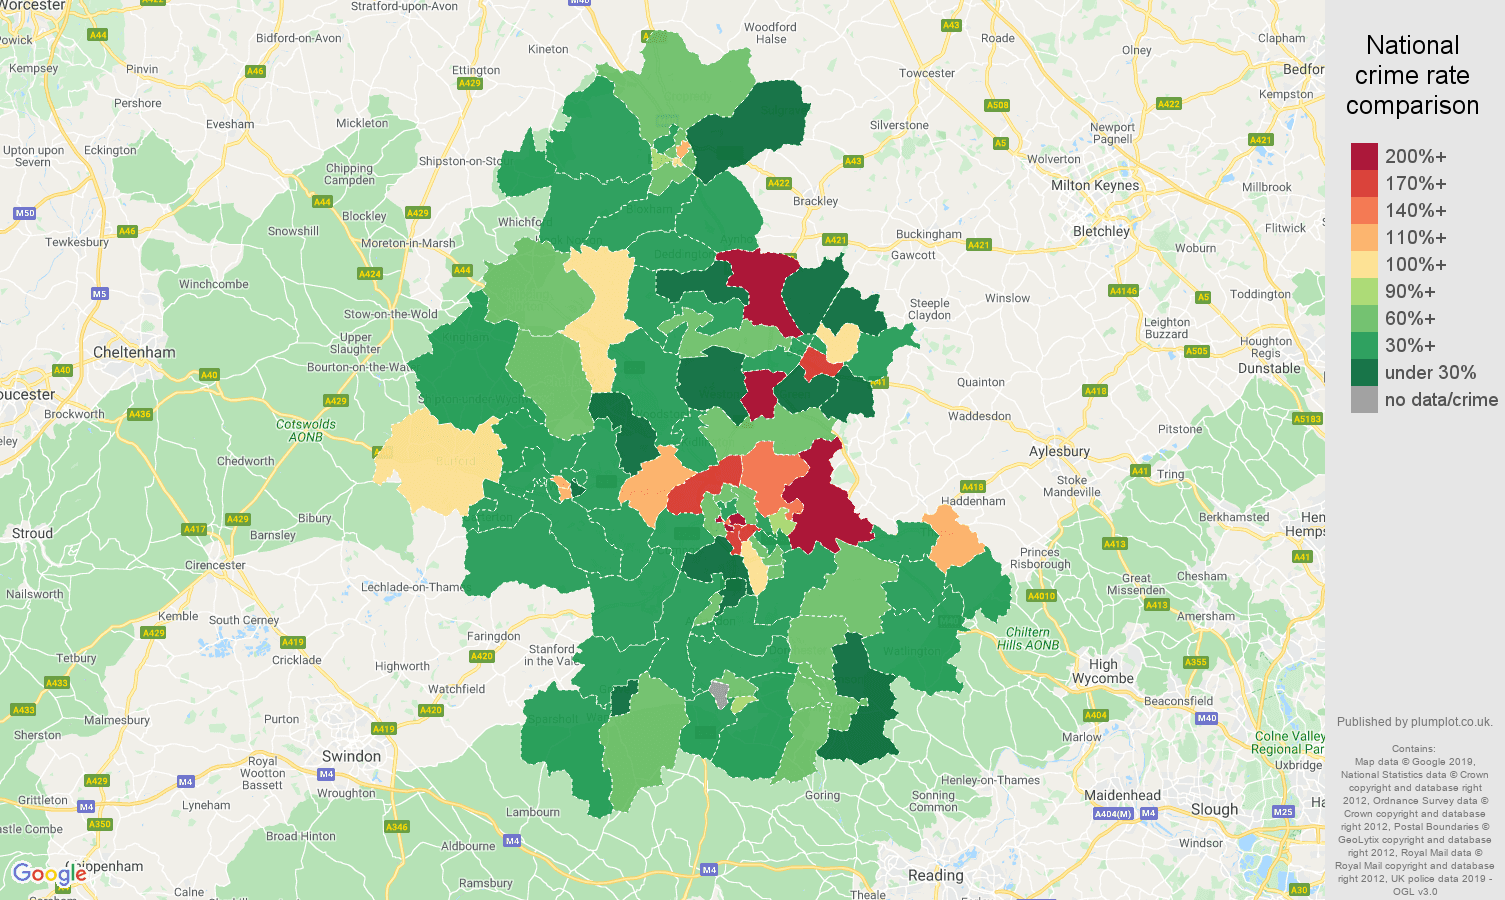 Oxford other theft crime rate comparison map